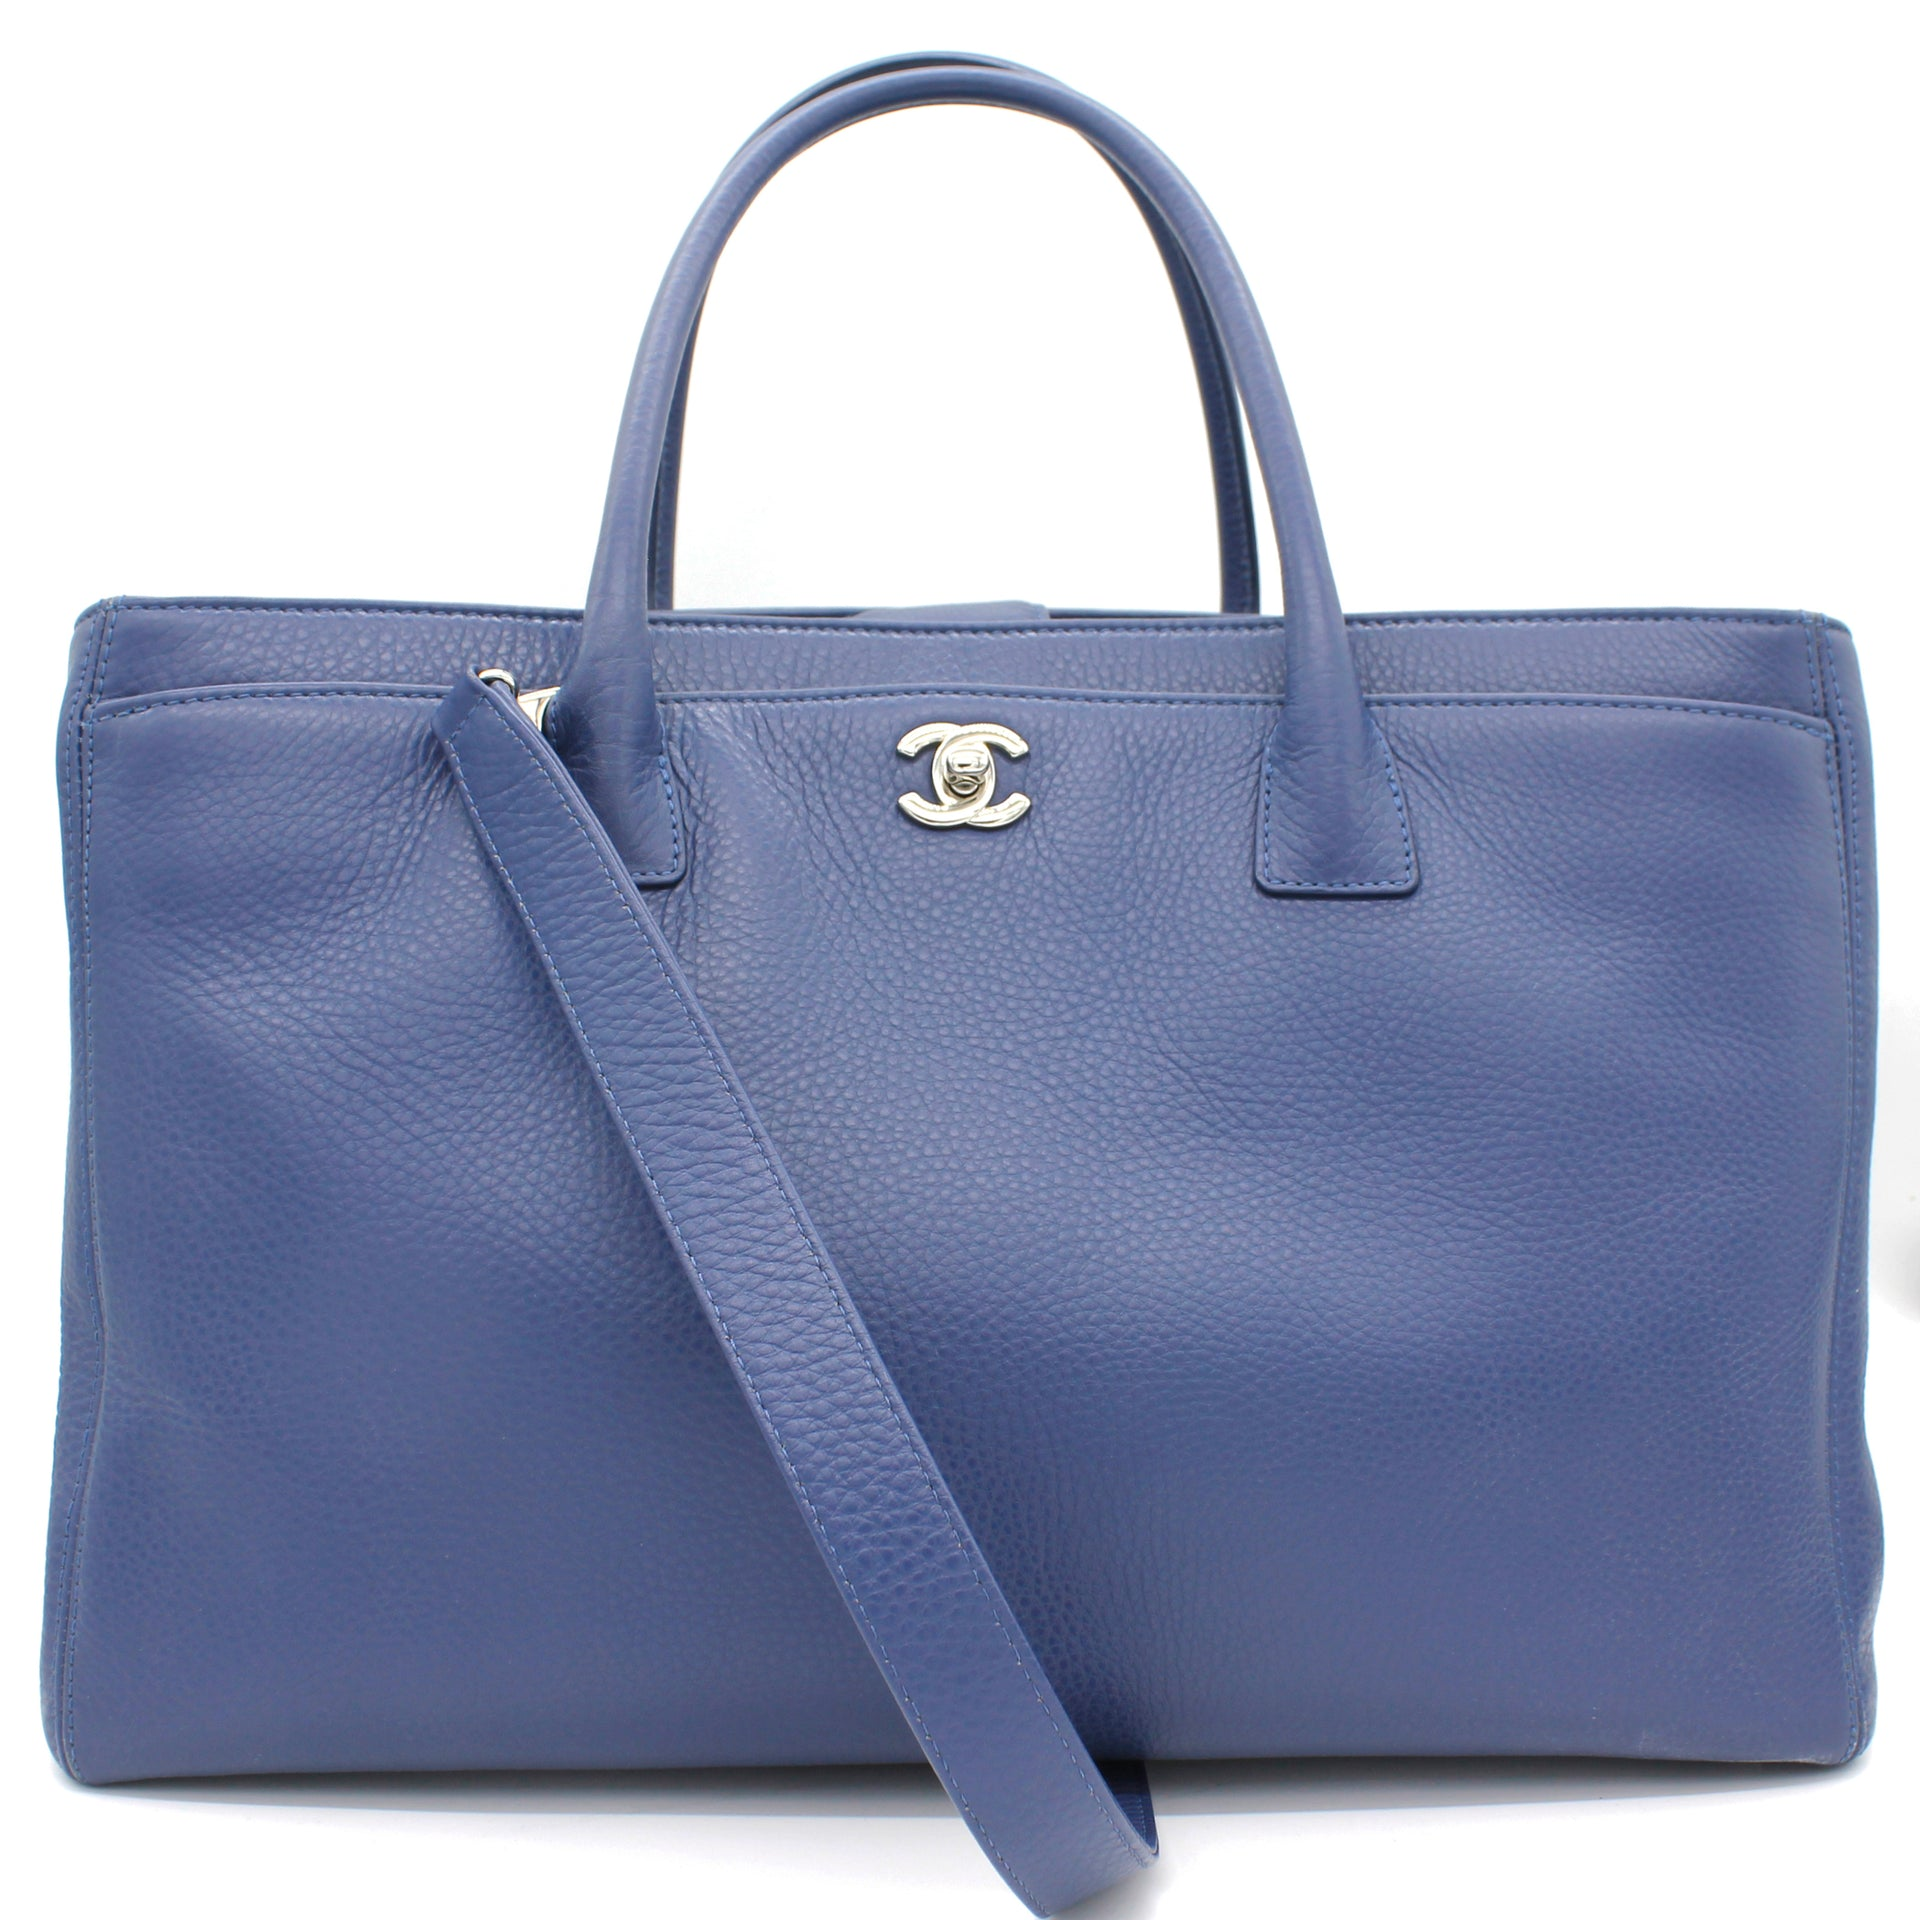 Executive Cerf Tote Navy Blue